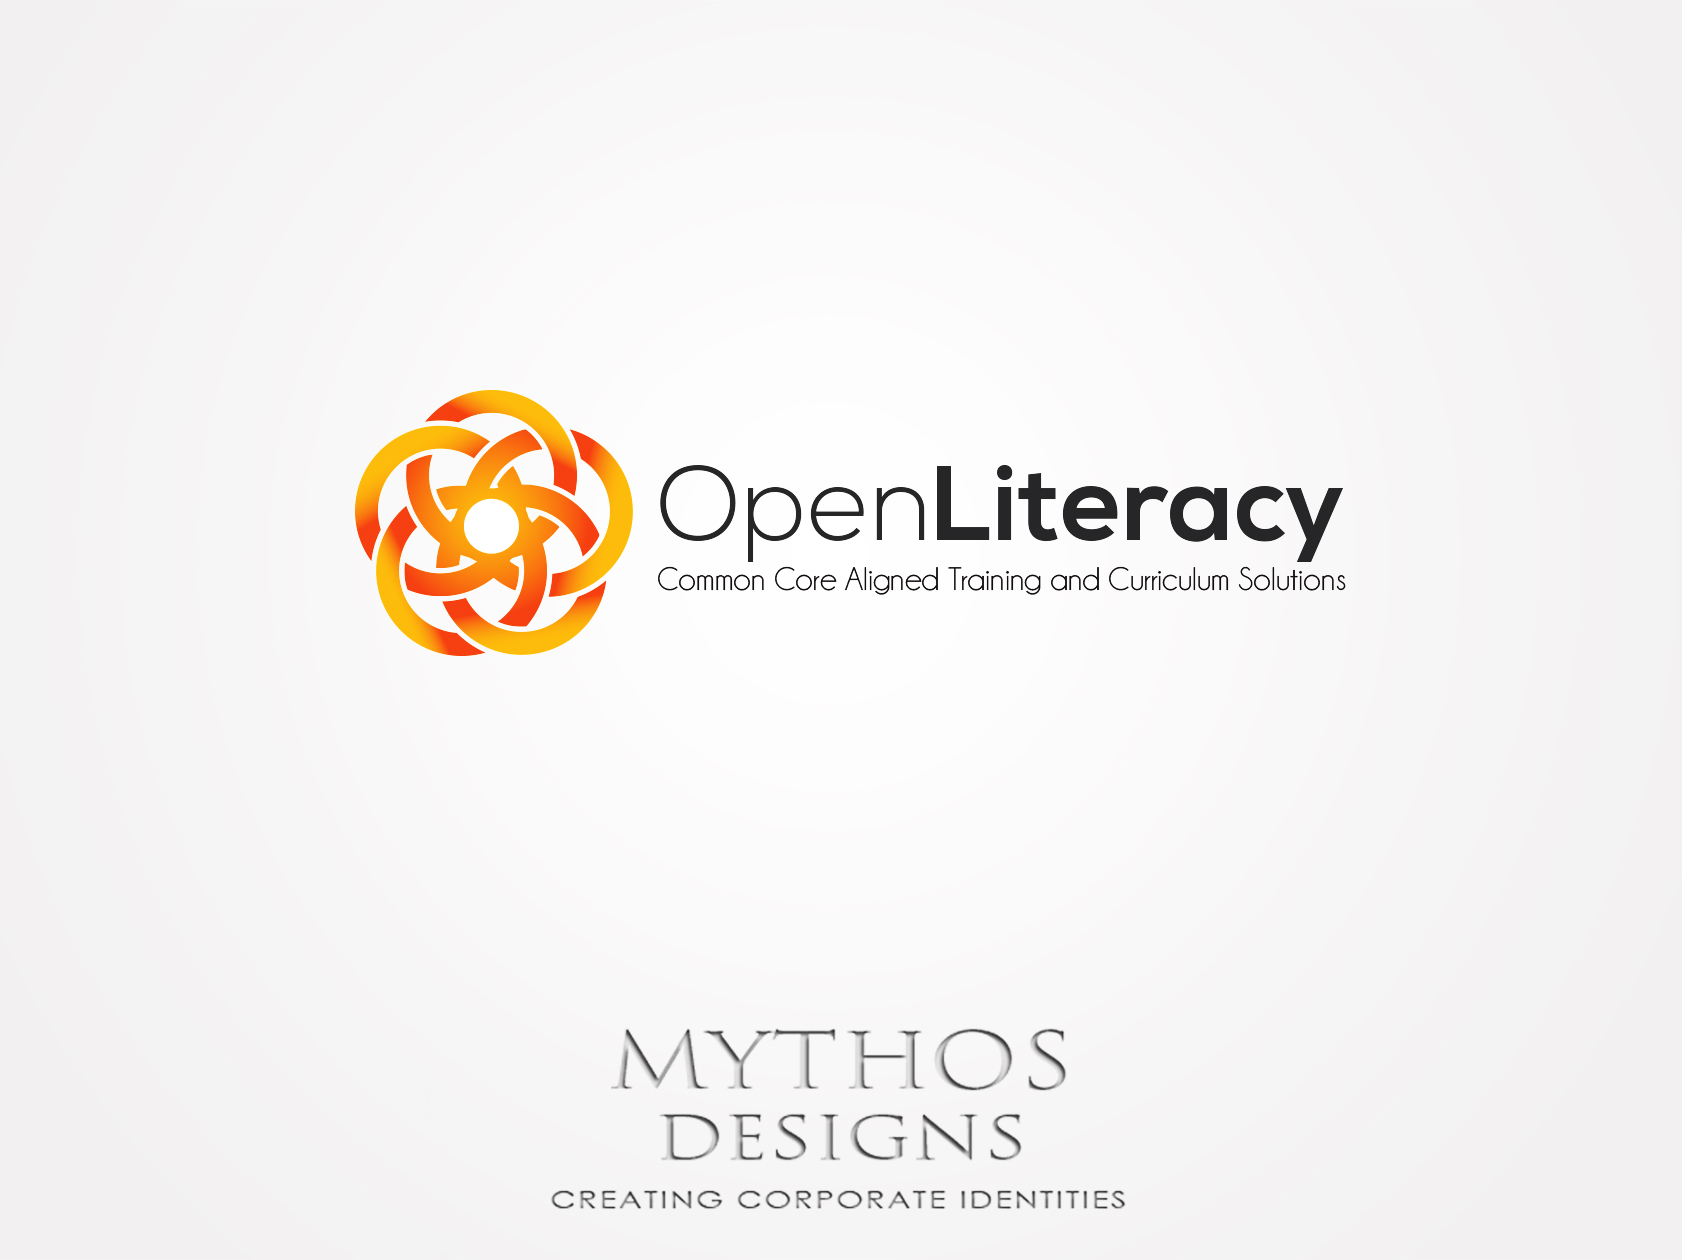 Logo Design by Mythos Designs - Entry No. 95 in the Logo Design Contest Inspiring Logo Design for OpenLiteracy.